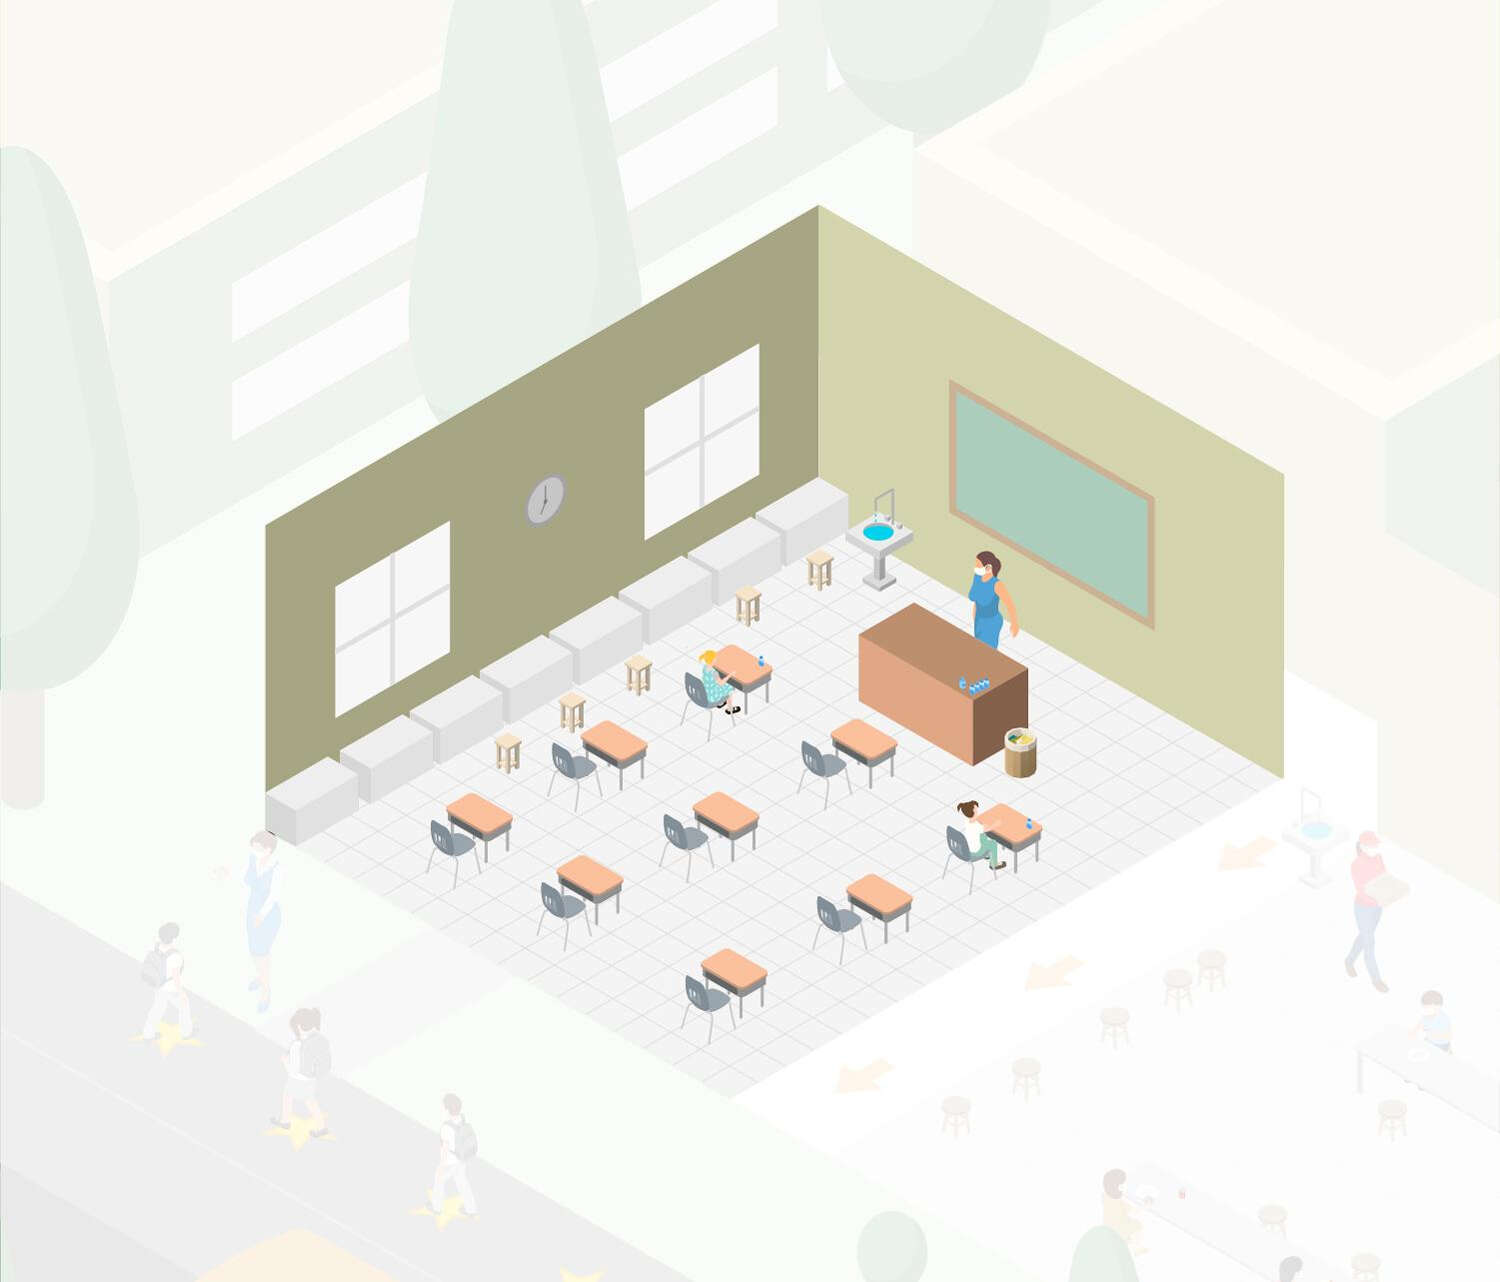 Drawing of school, with students sitting at desks 6 feet apart.